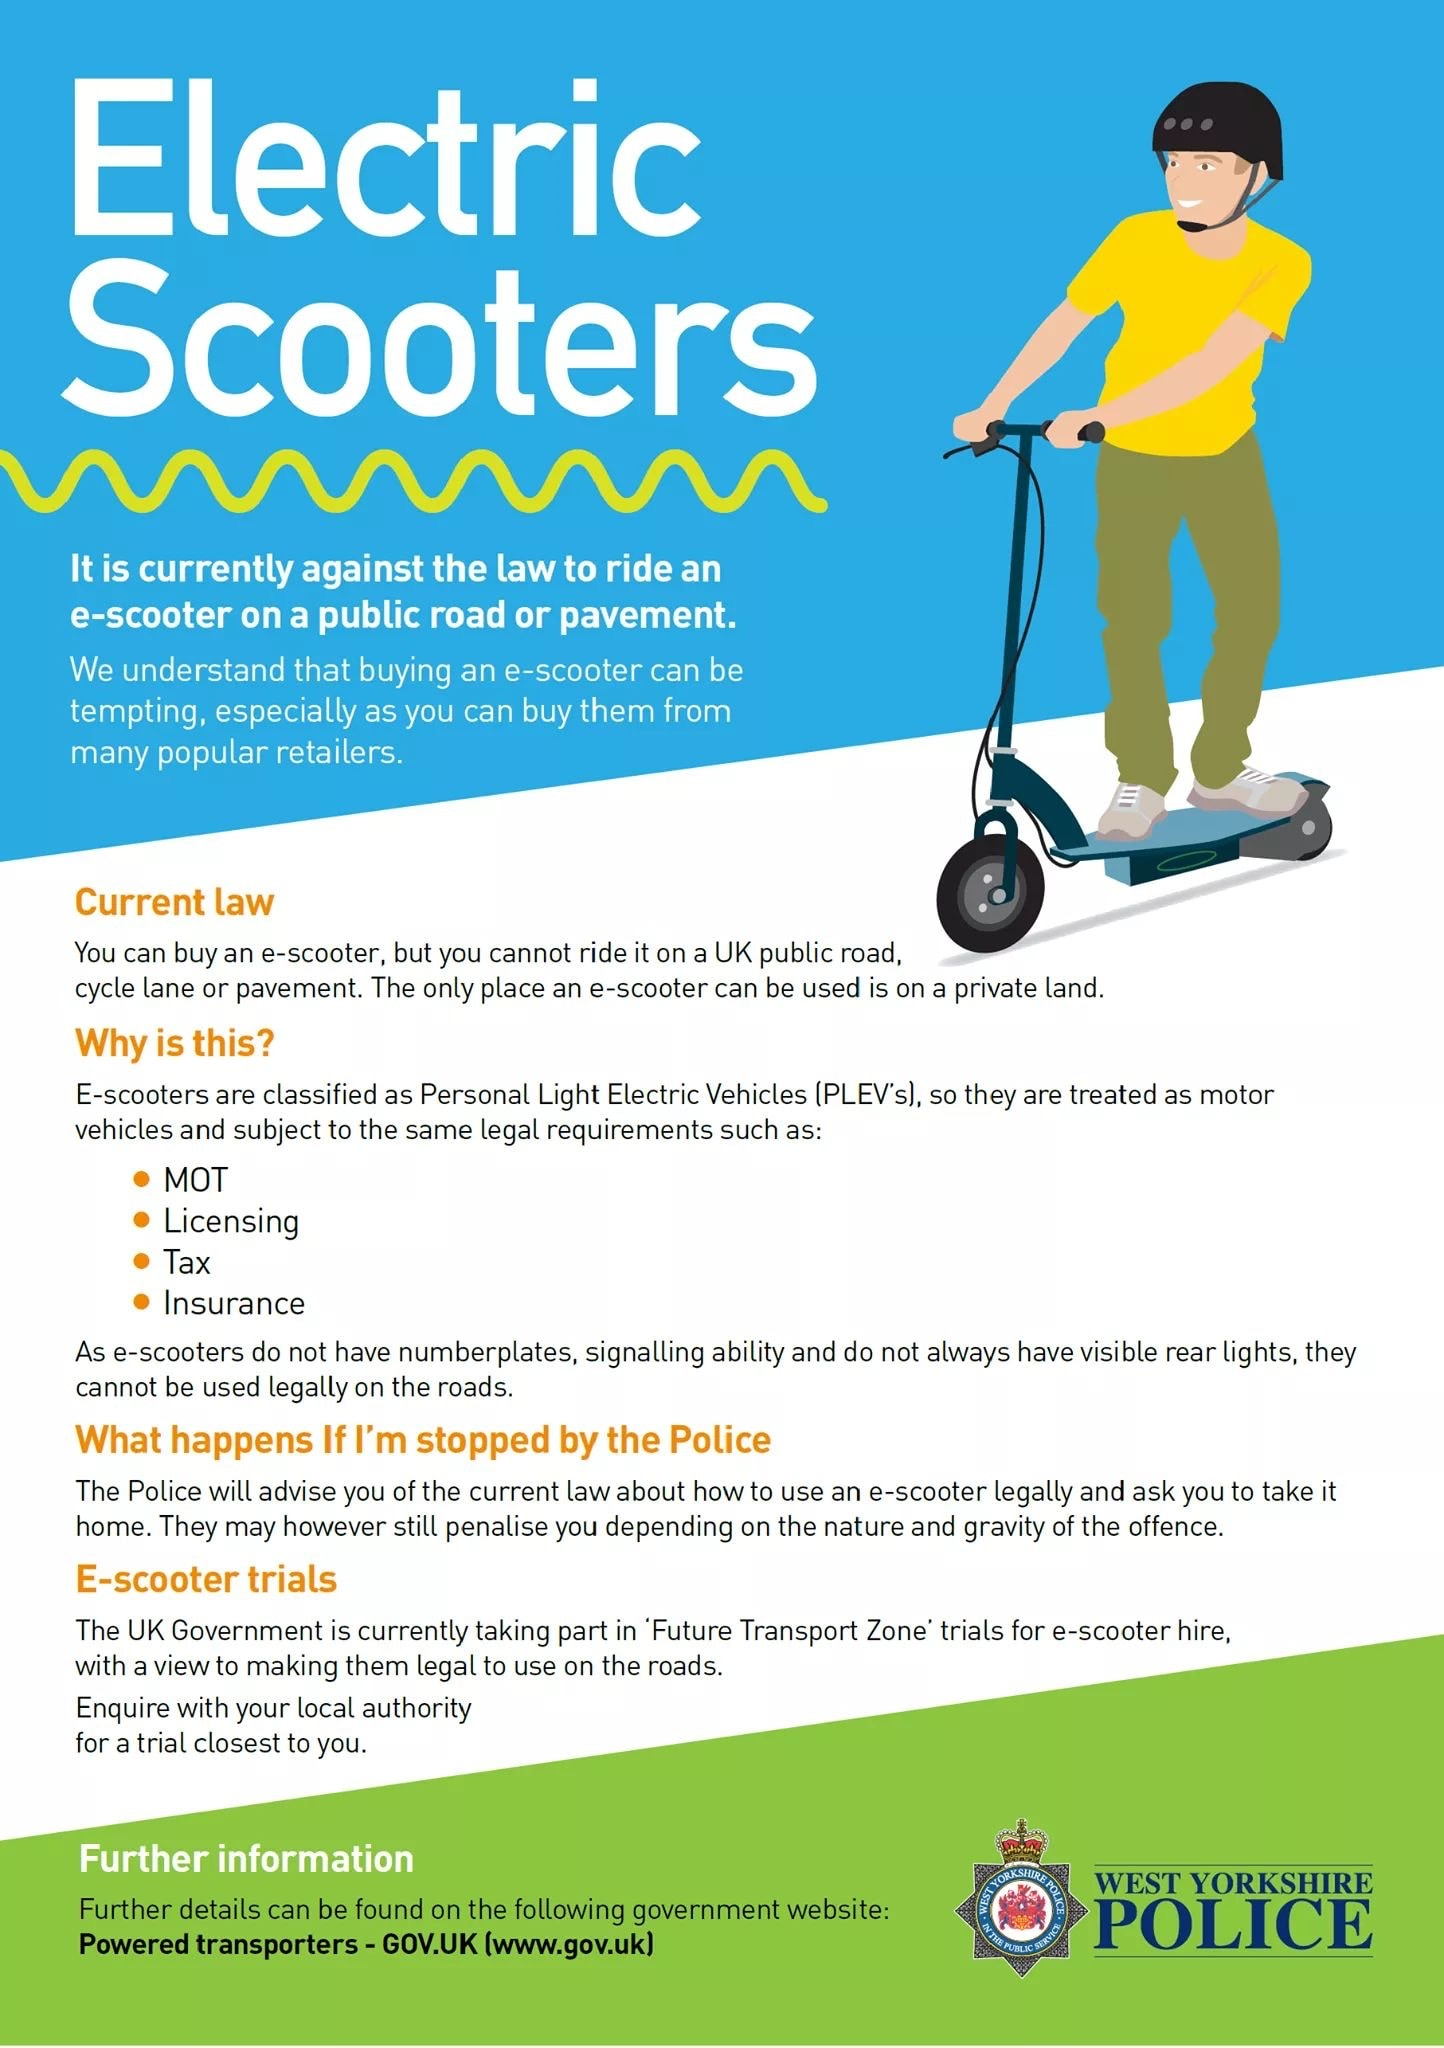 Electric Scooters poster from West Yorkshire Police Illegal to ride on UK public roads cycle lane or pavement